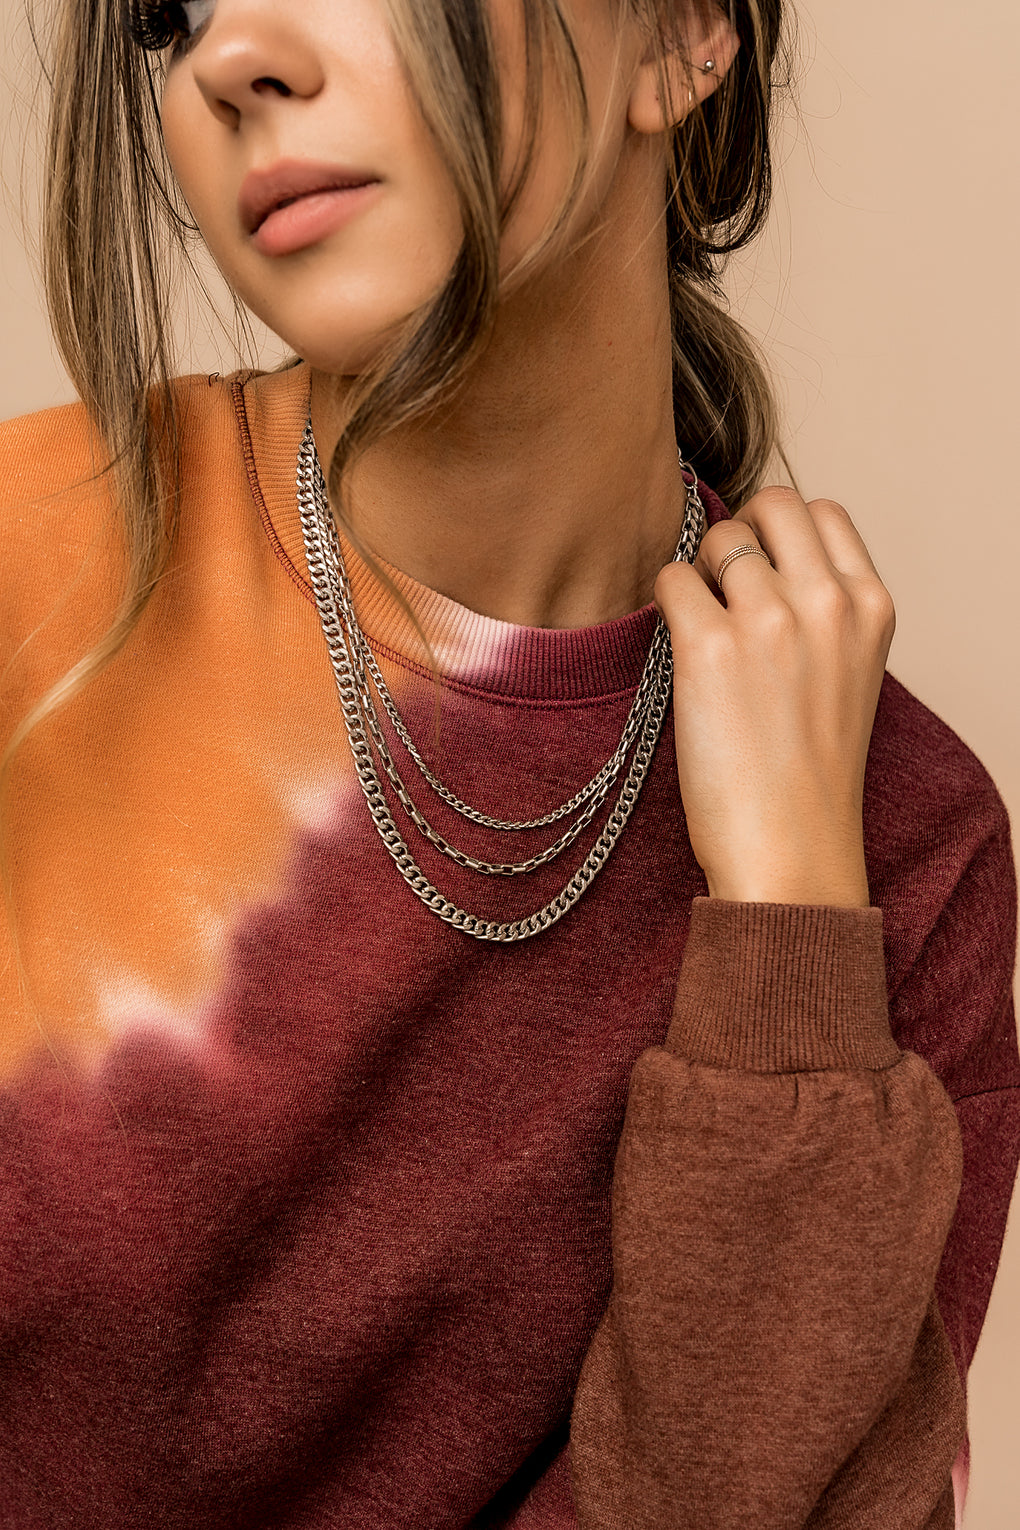 Hells Bells Layered Chain Necklace in Silver